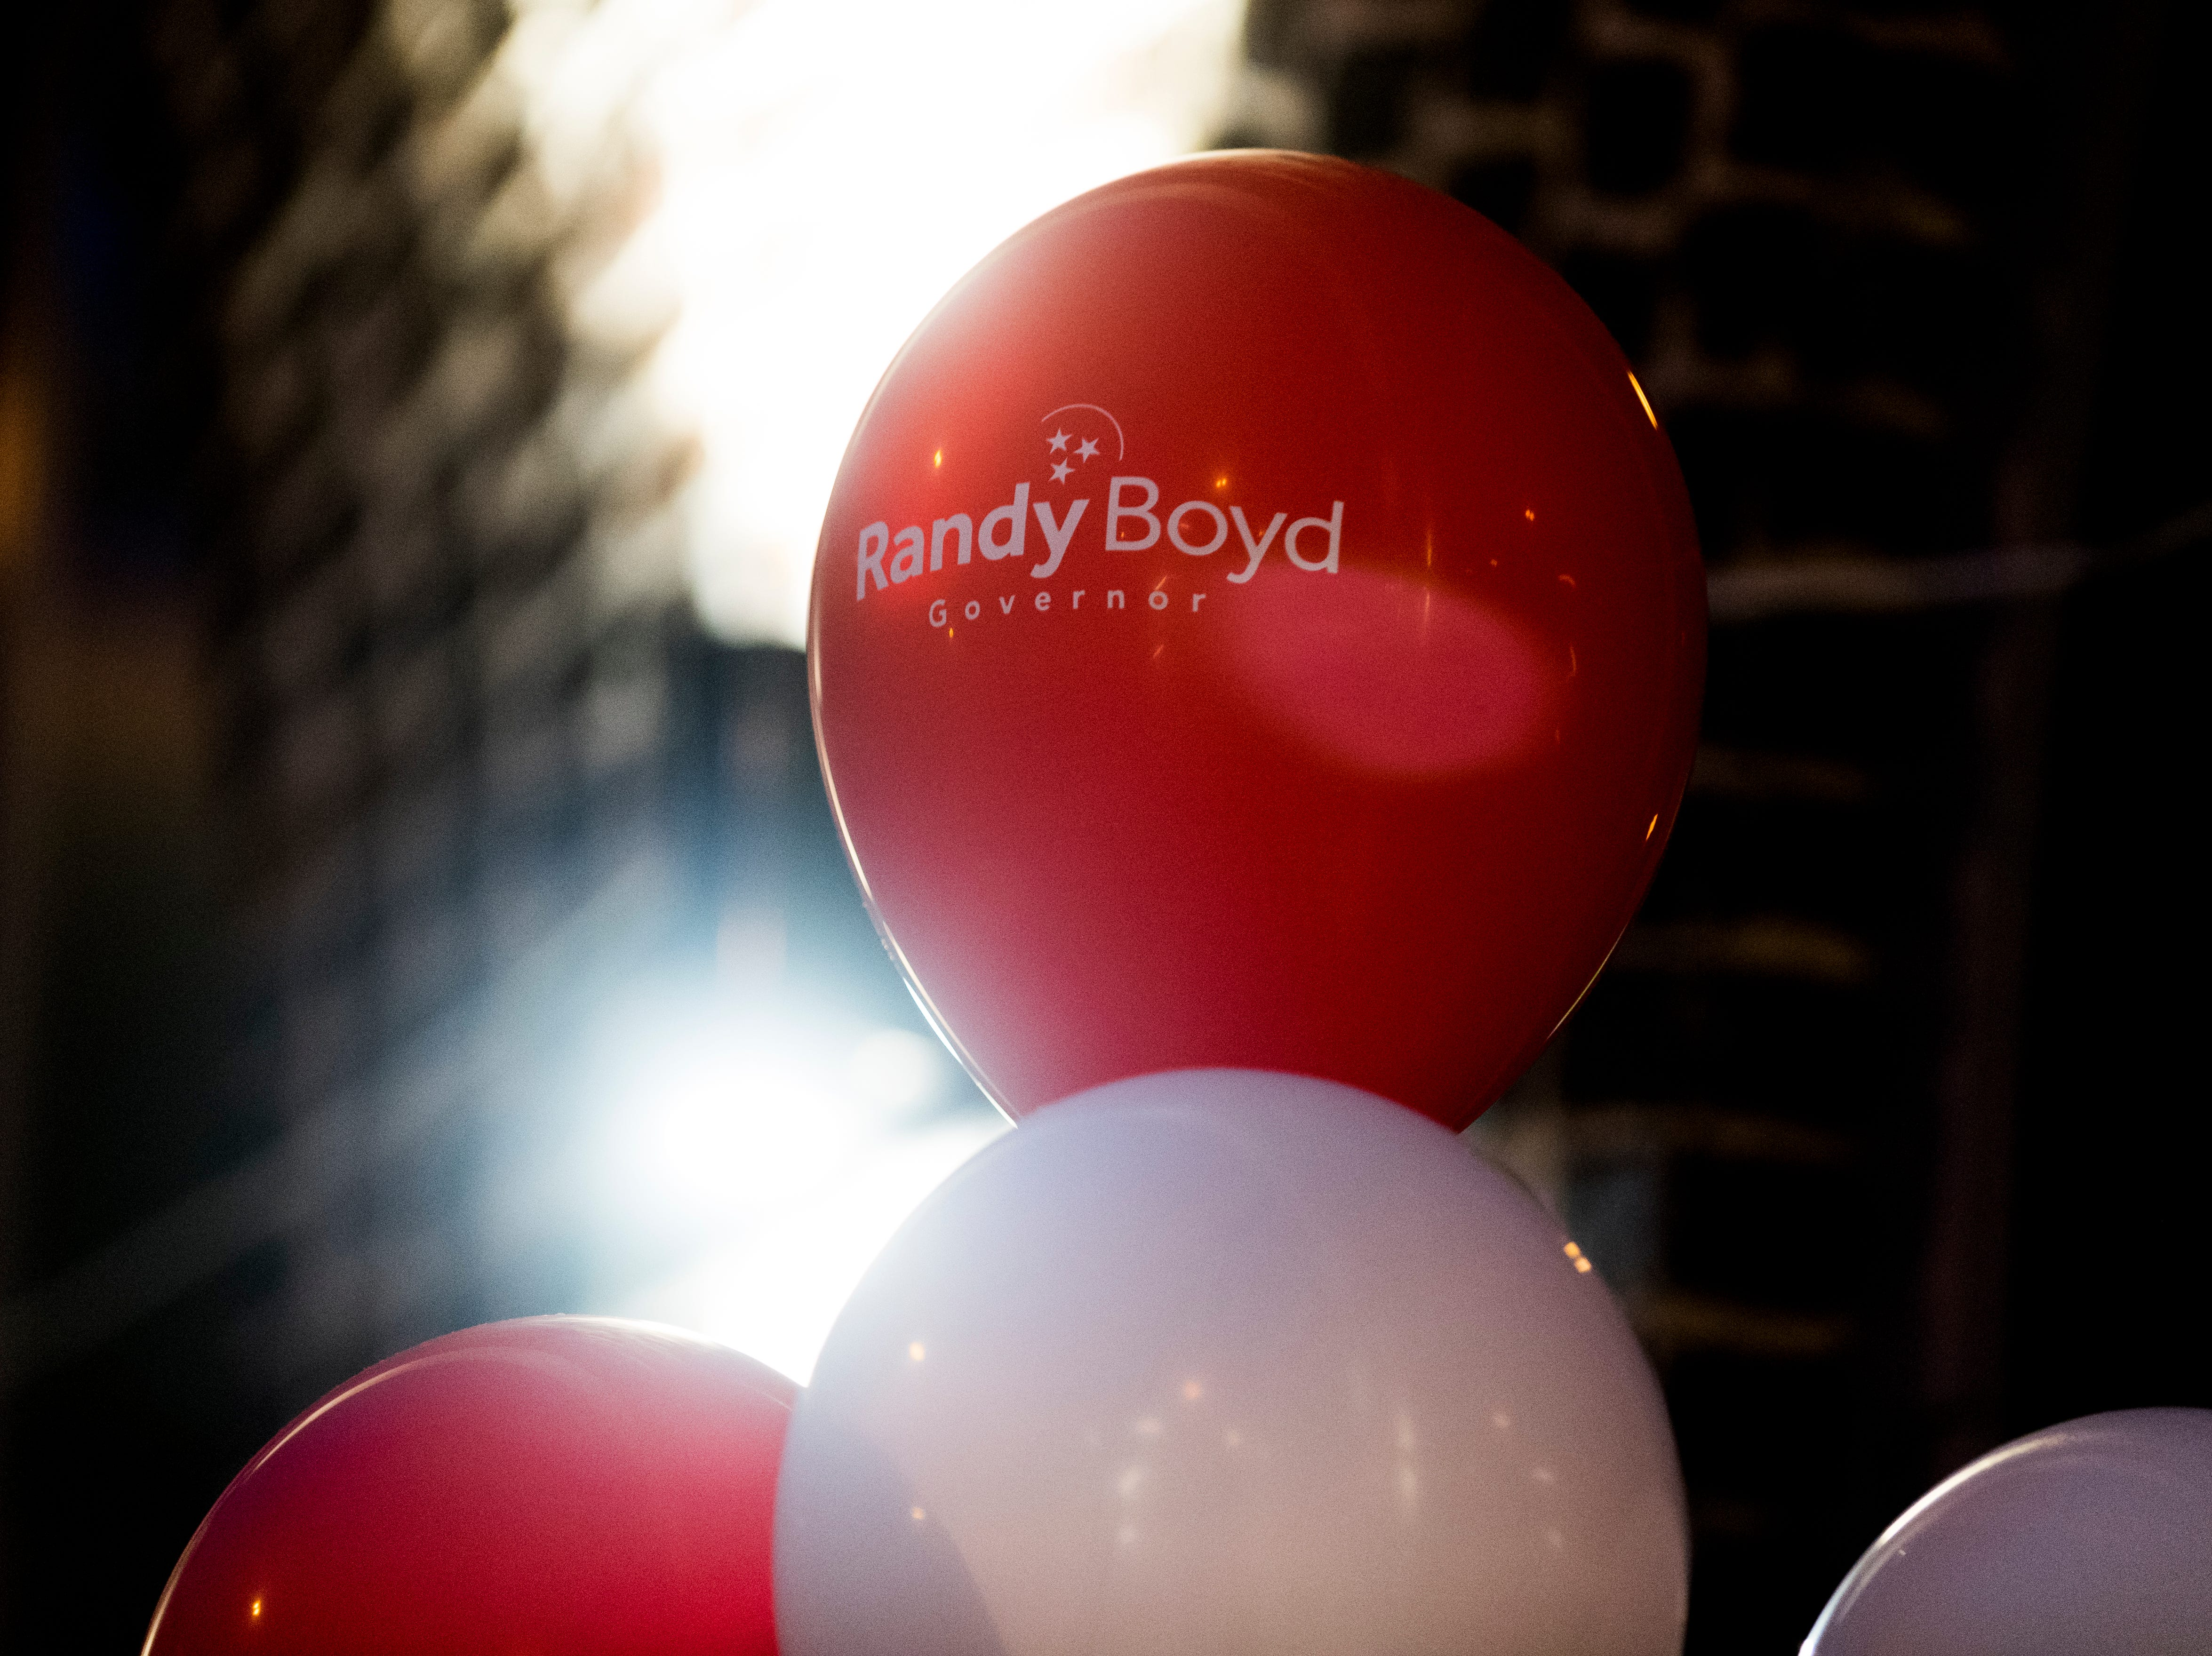 Randy Boyd balloons greet supporters at the entrance to the Randy Boyd for Governor watch party at Jackson Terminal in Knoxville, Tennessee on Thursday, August 2, 2018.